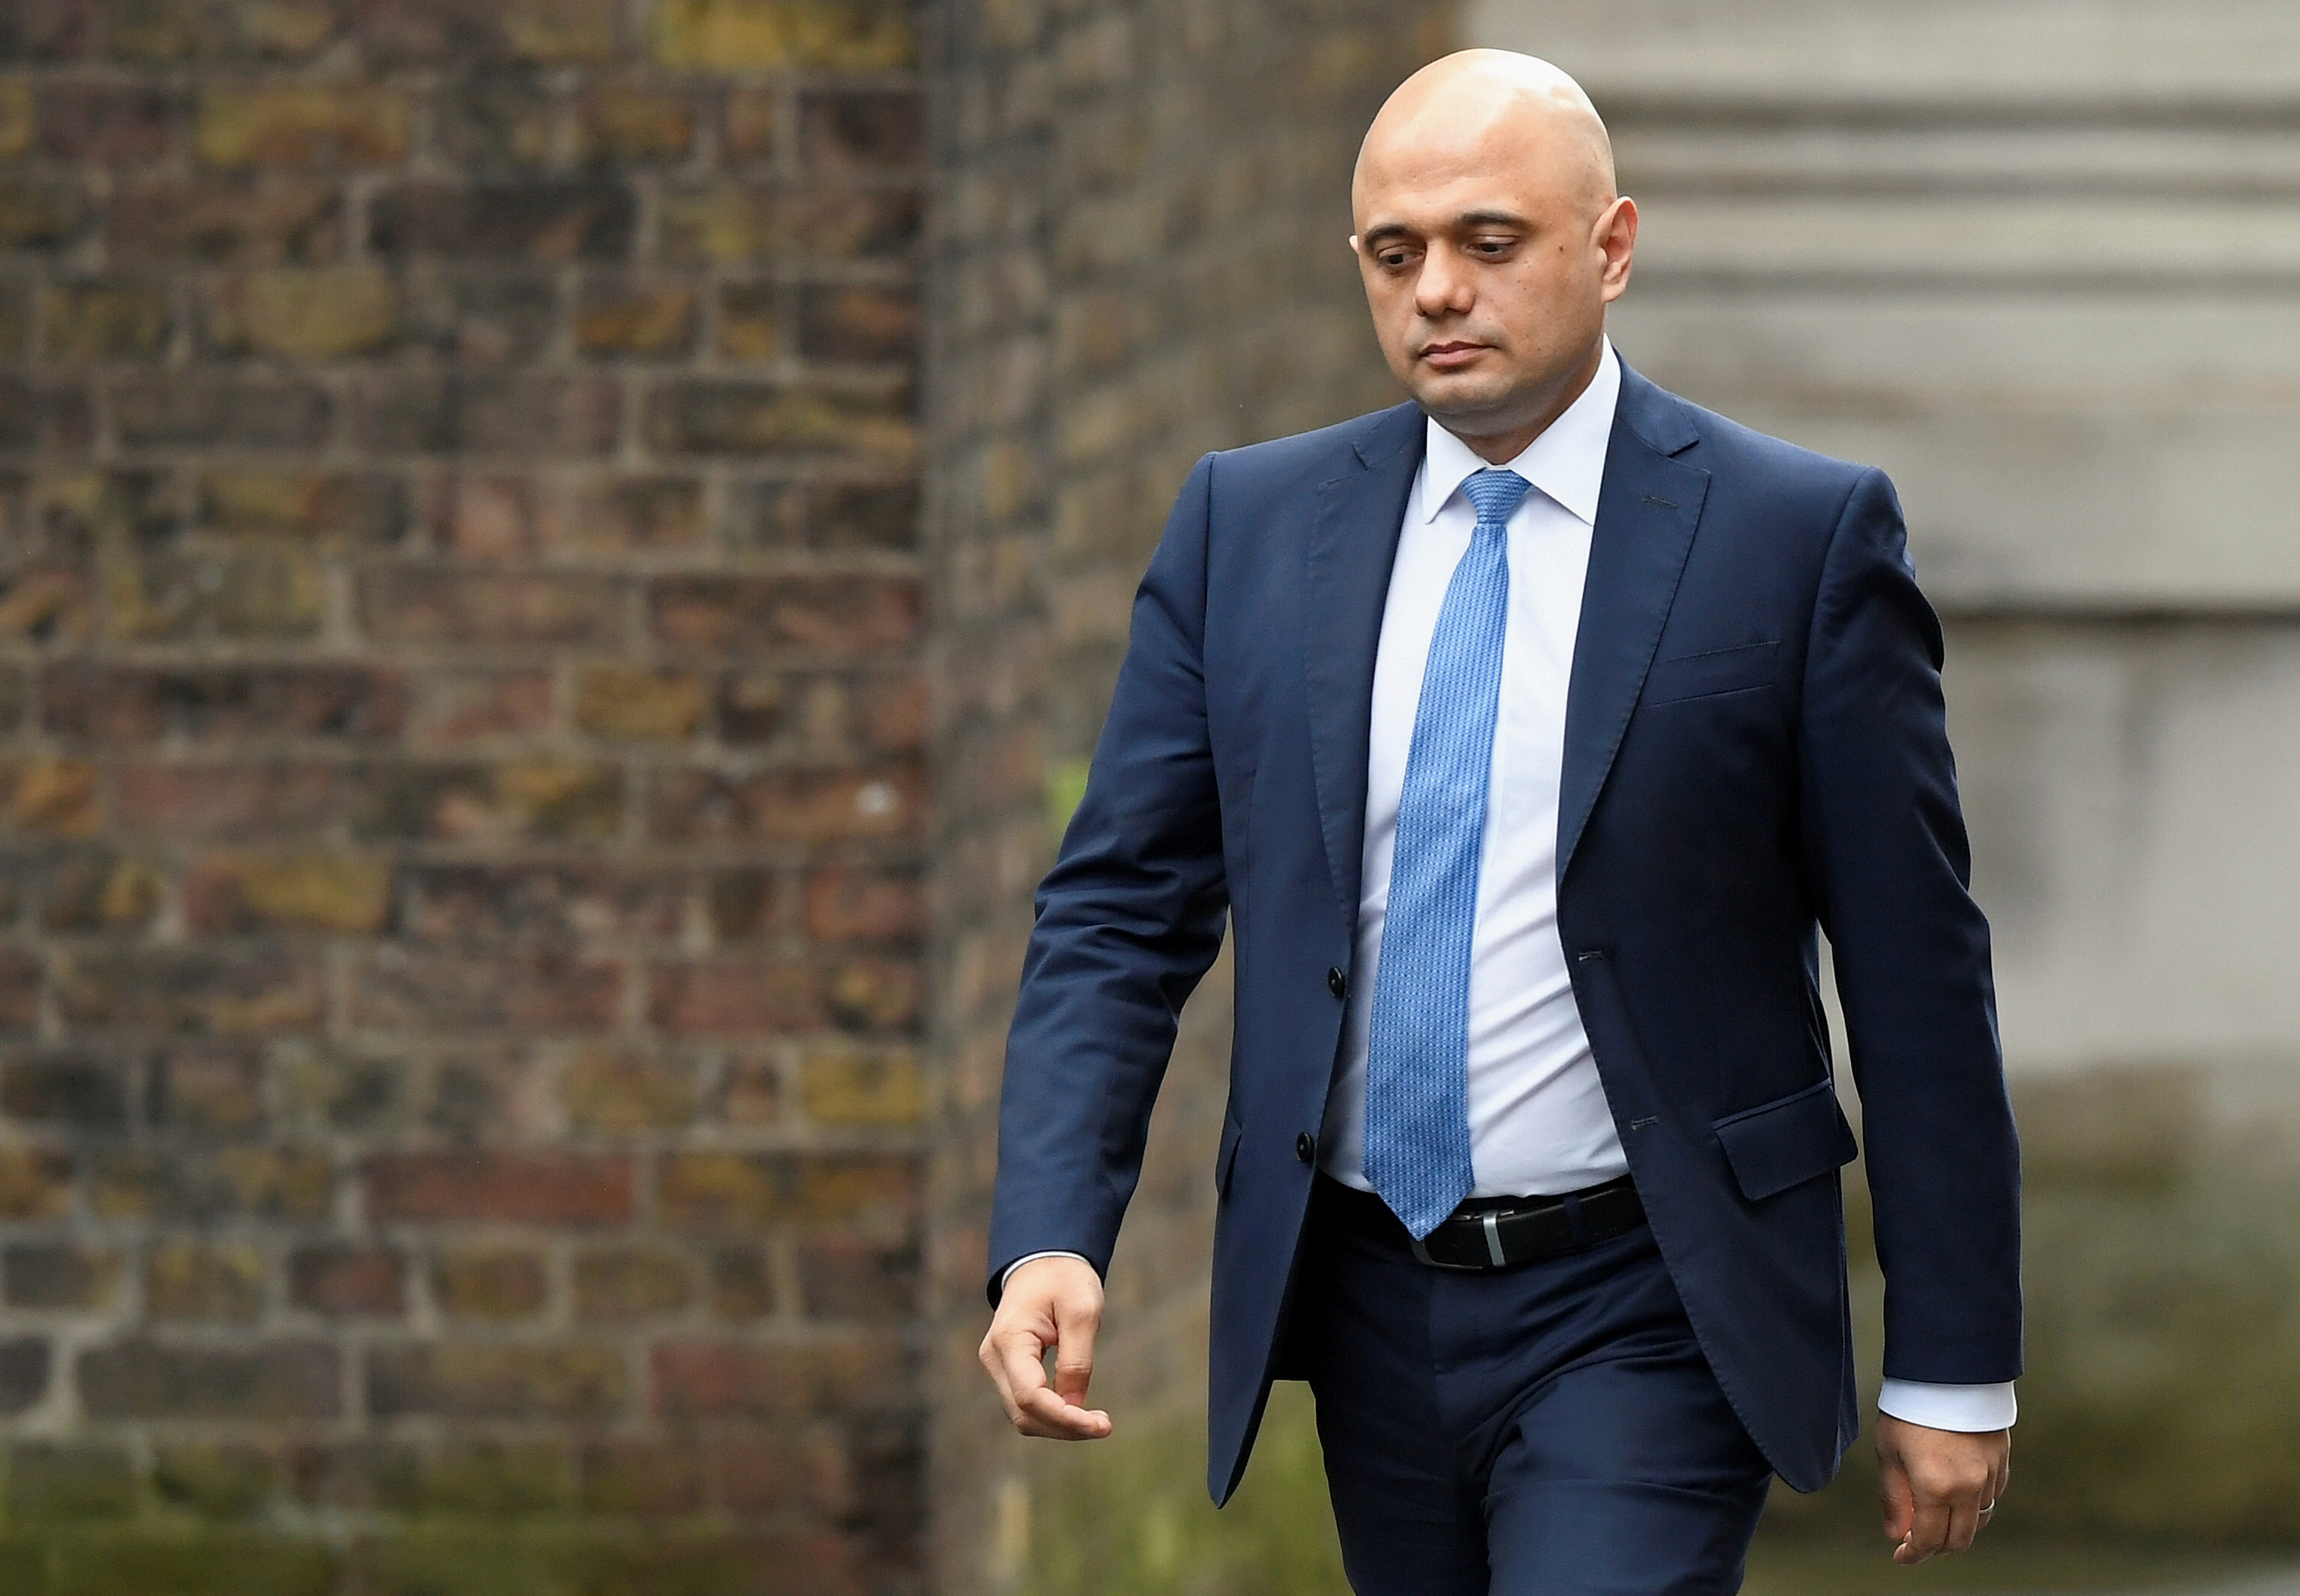 Sajid Javid arrives at Downing Street in London, Britain February 13, 2020. REUTERS/Toby Melville